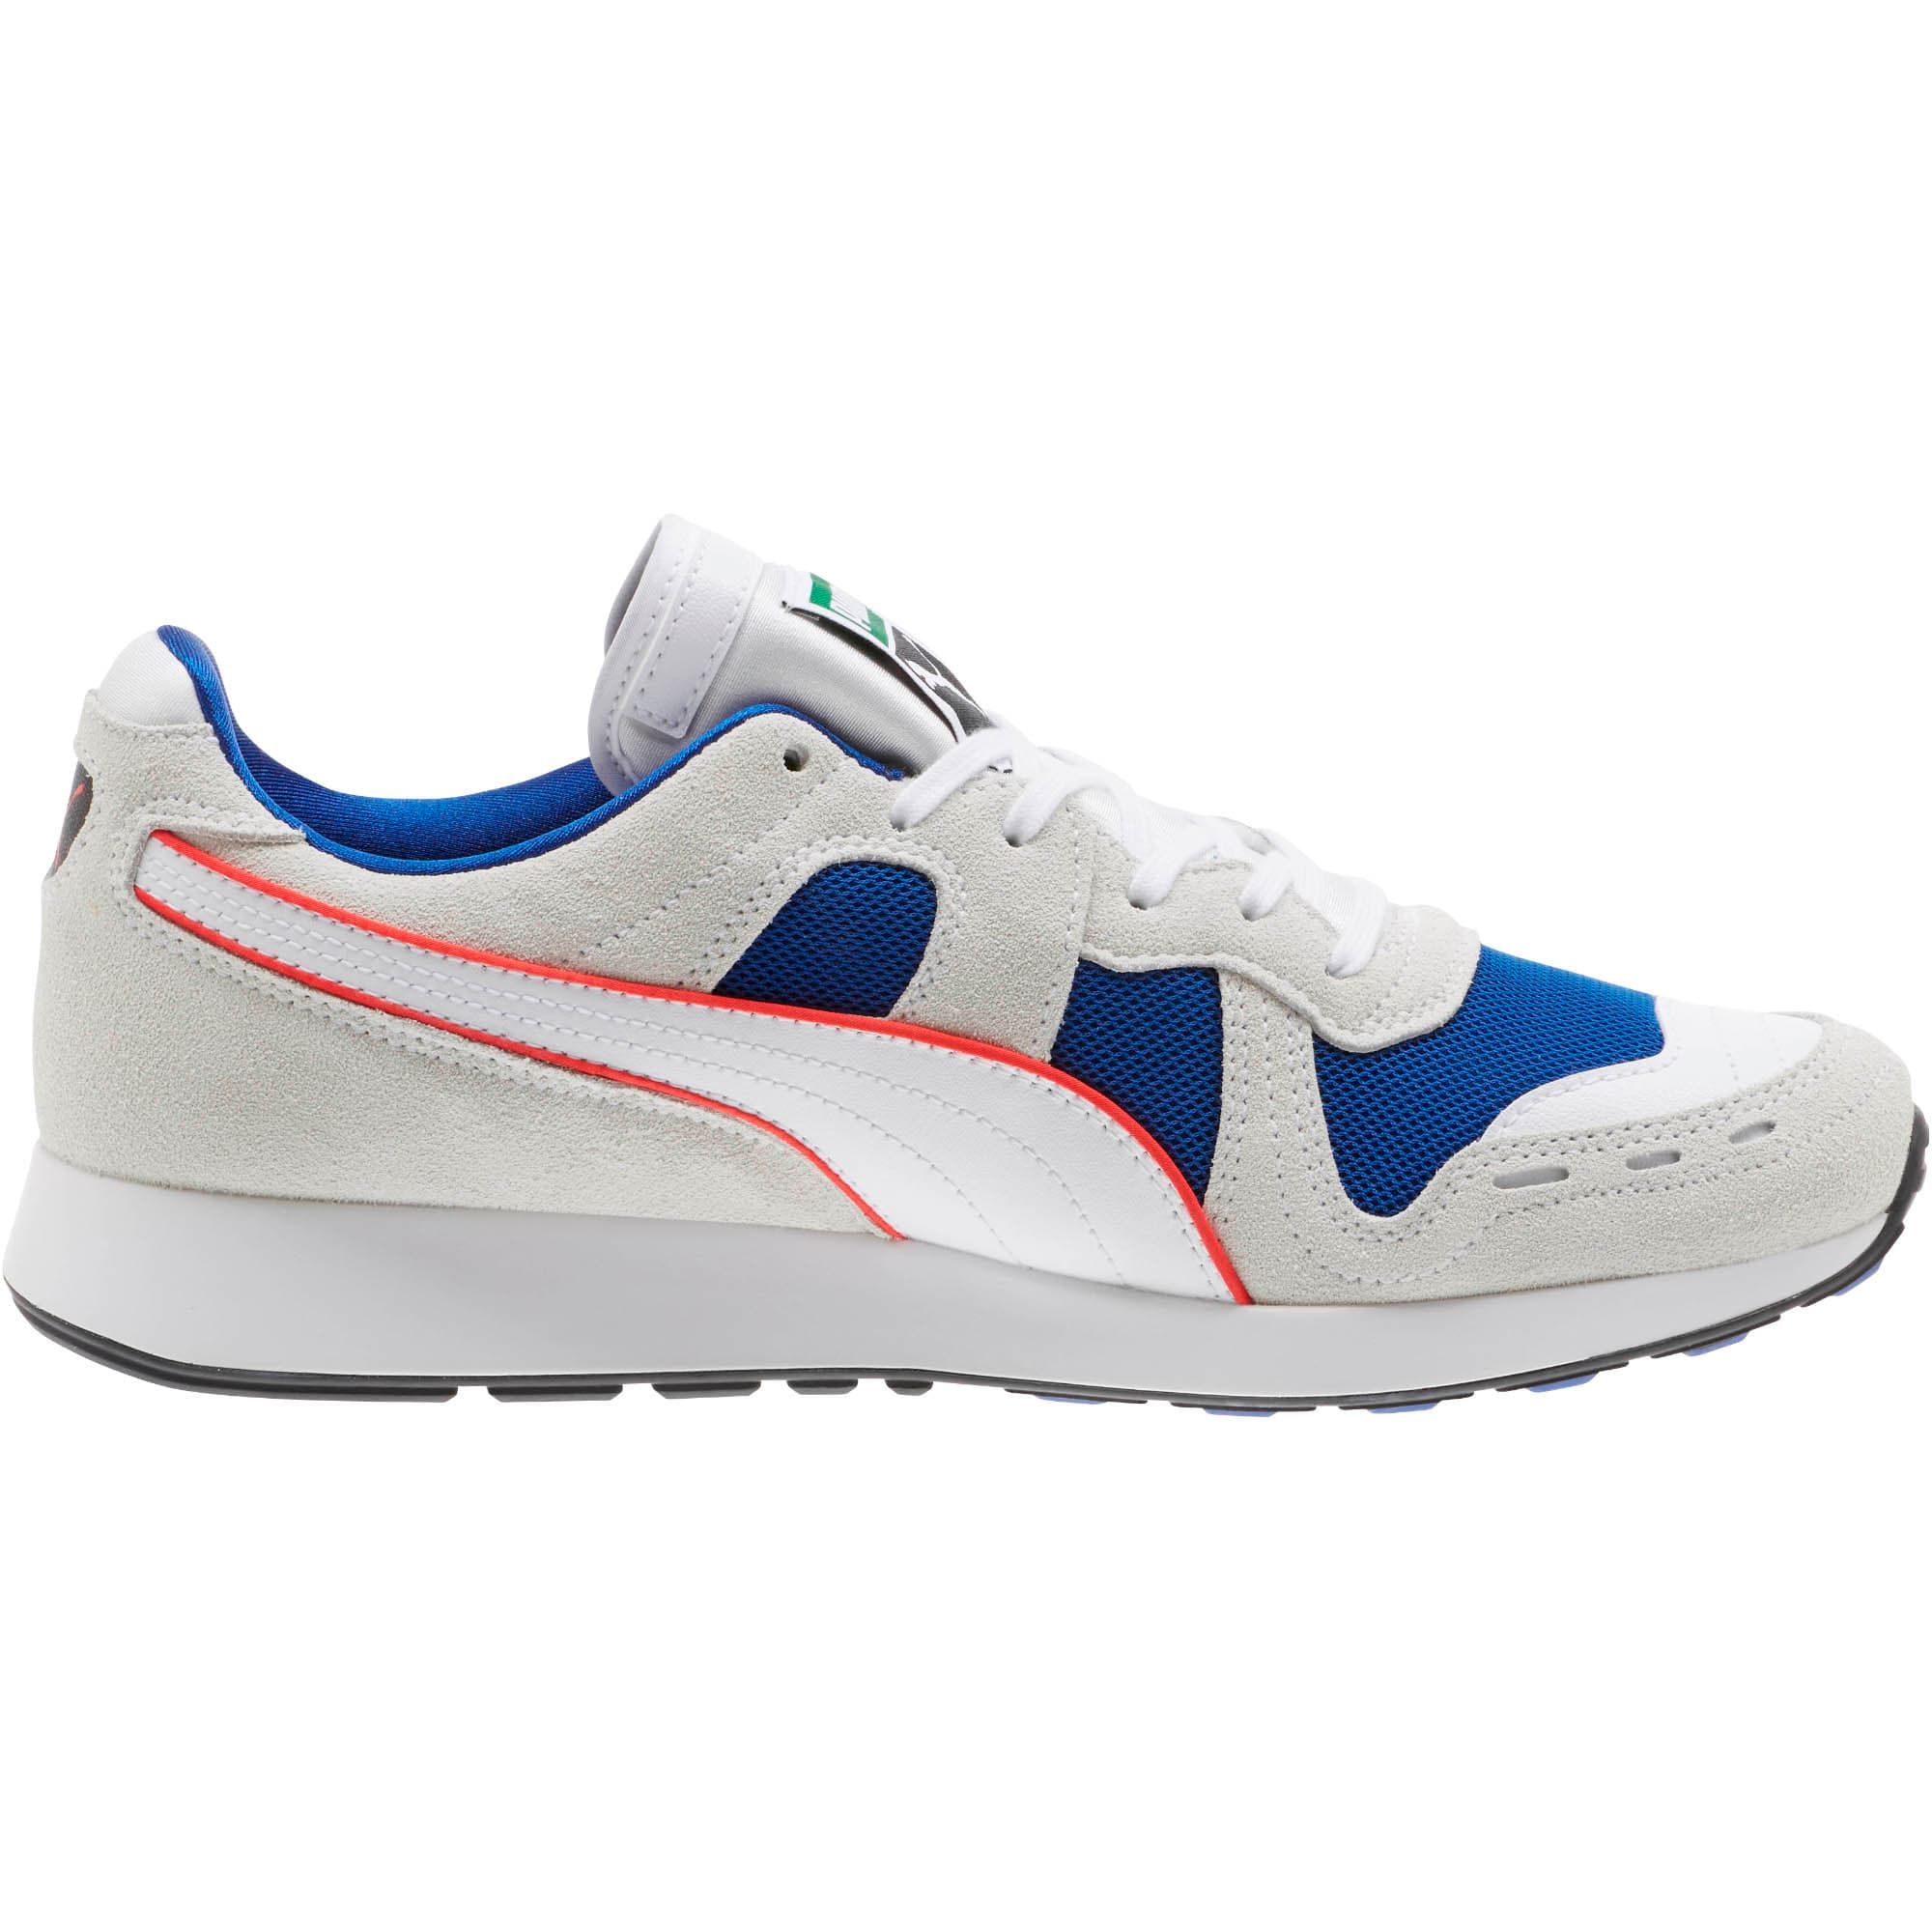 Thumbnail 3 of RS-100 Core Sneakers, Puma White-Surf The Web, medium